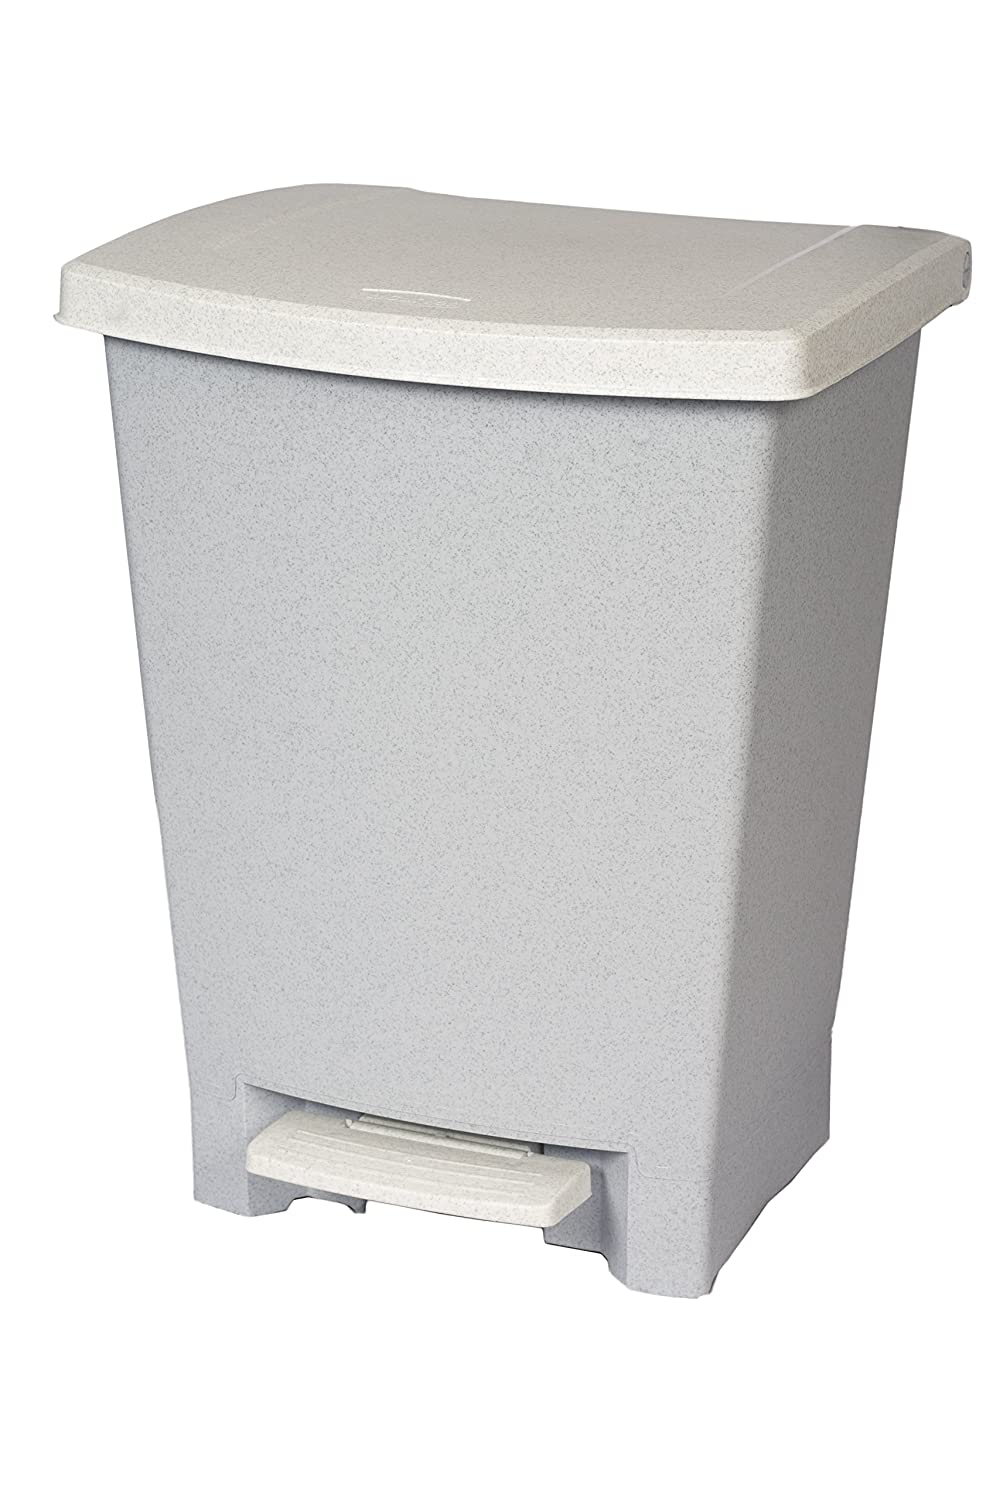 Rubbermaid Commercial Vanity Pedal Bin R052000